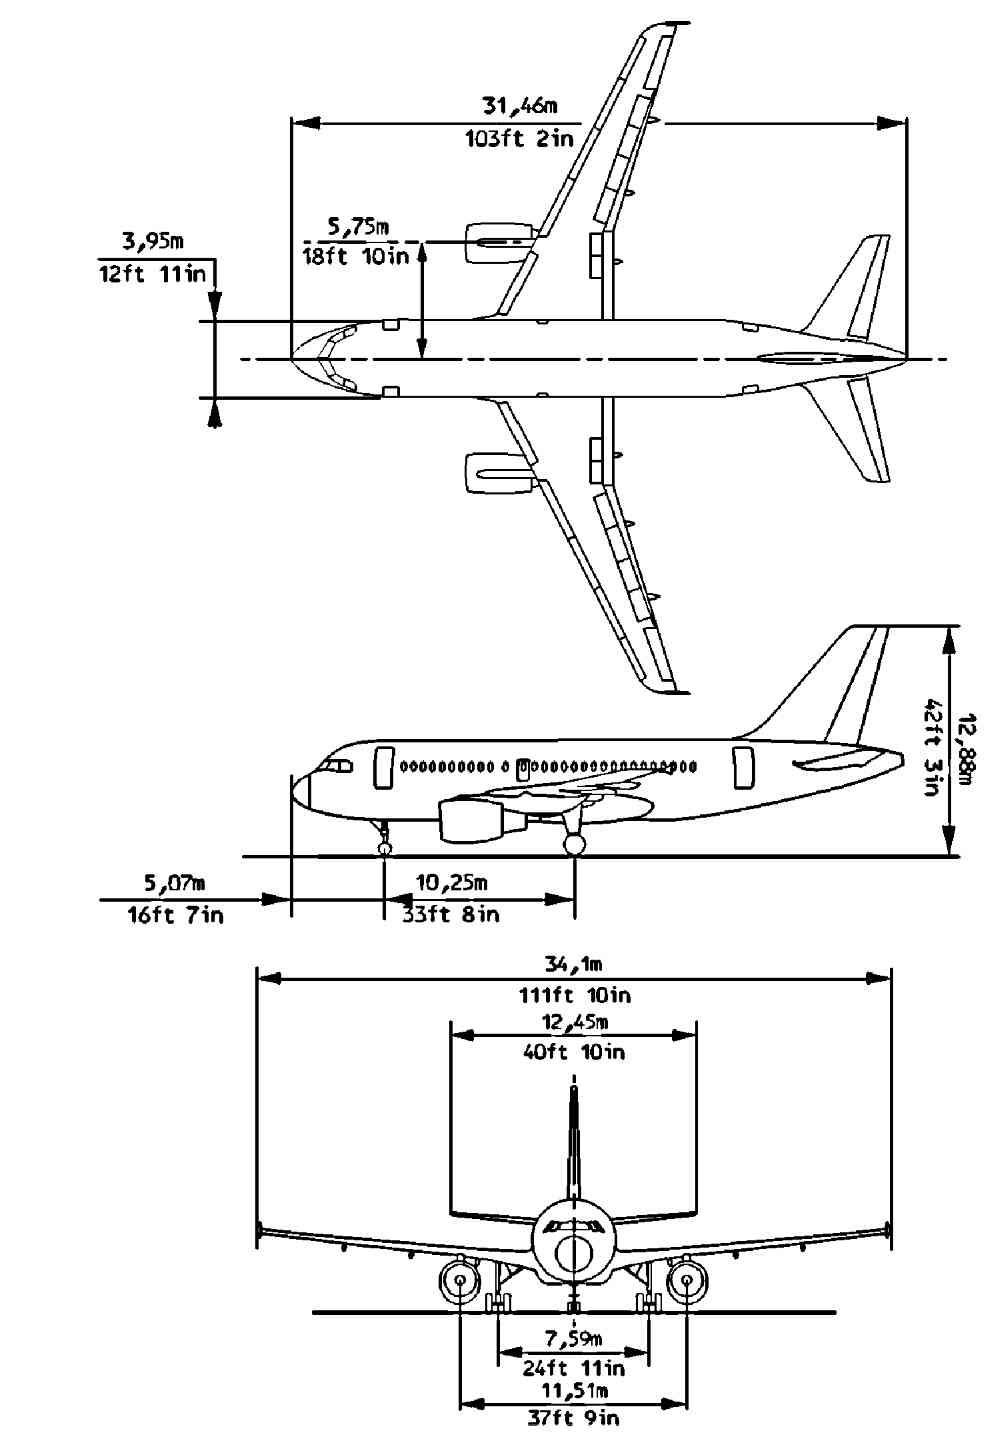 a330 seating diagram